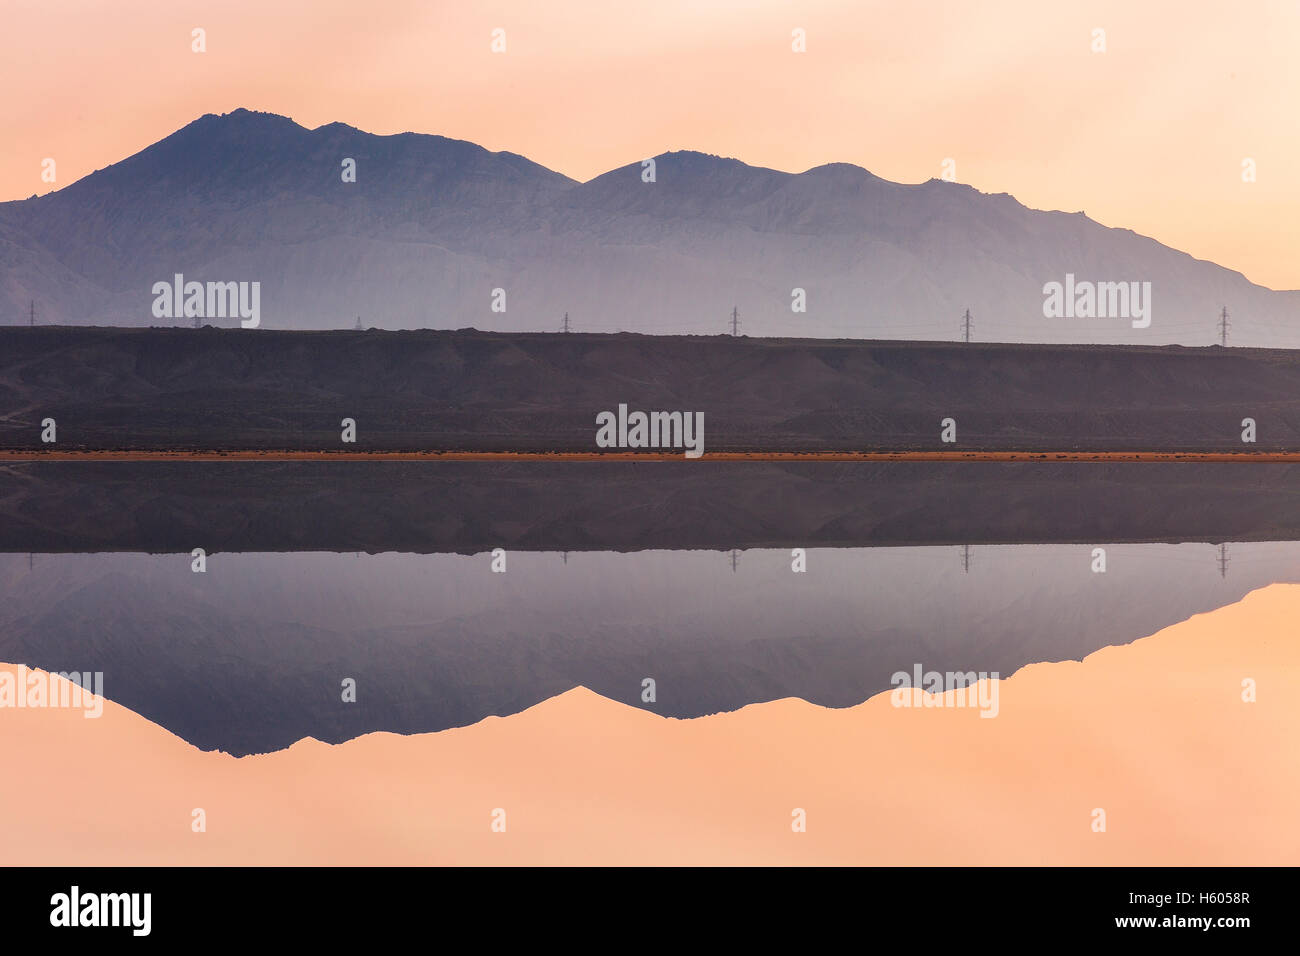 Abstract landscape with water reflection - Stock Image